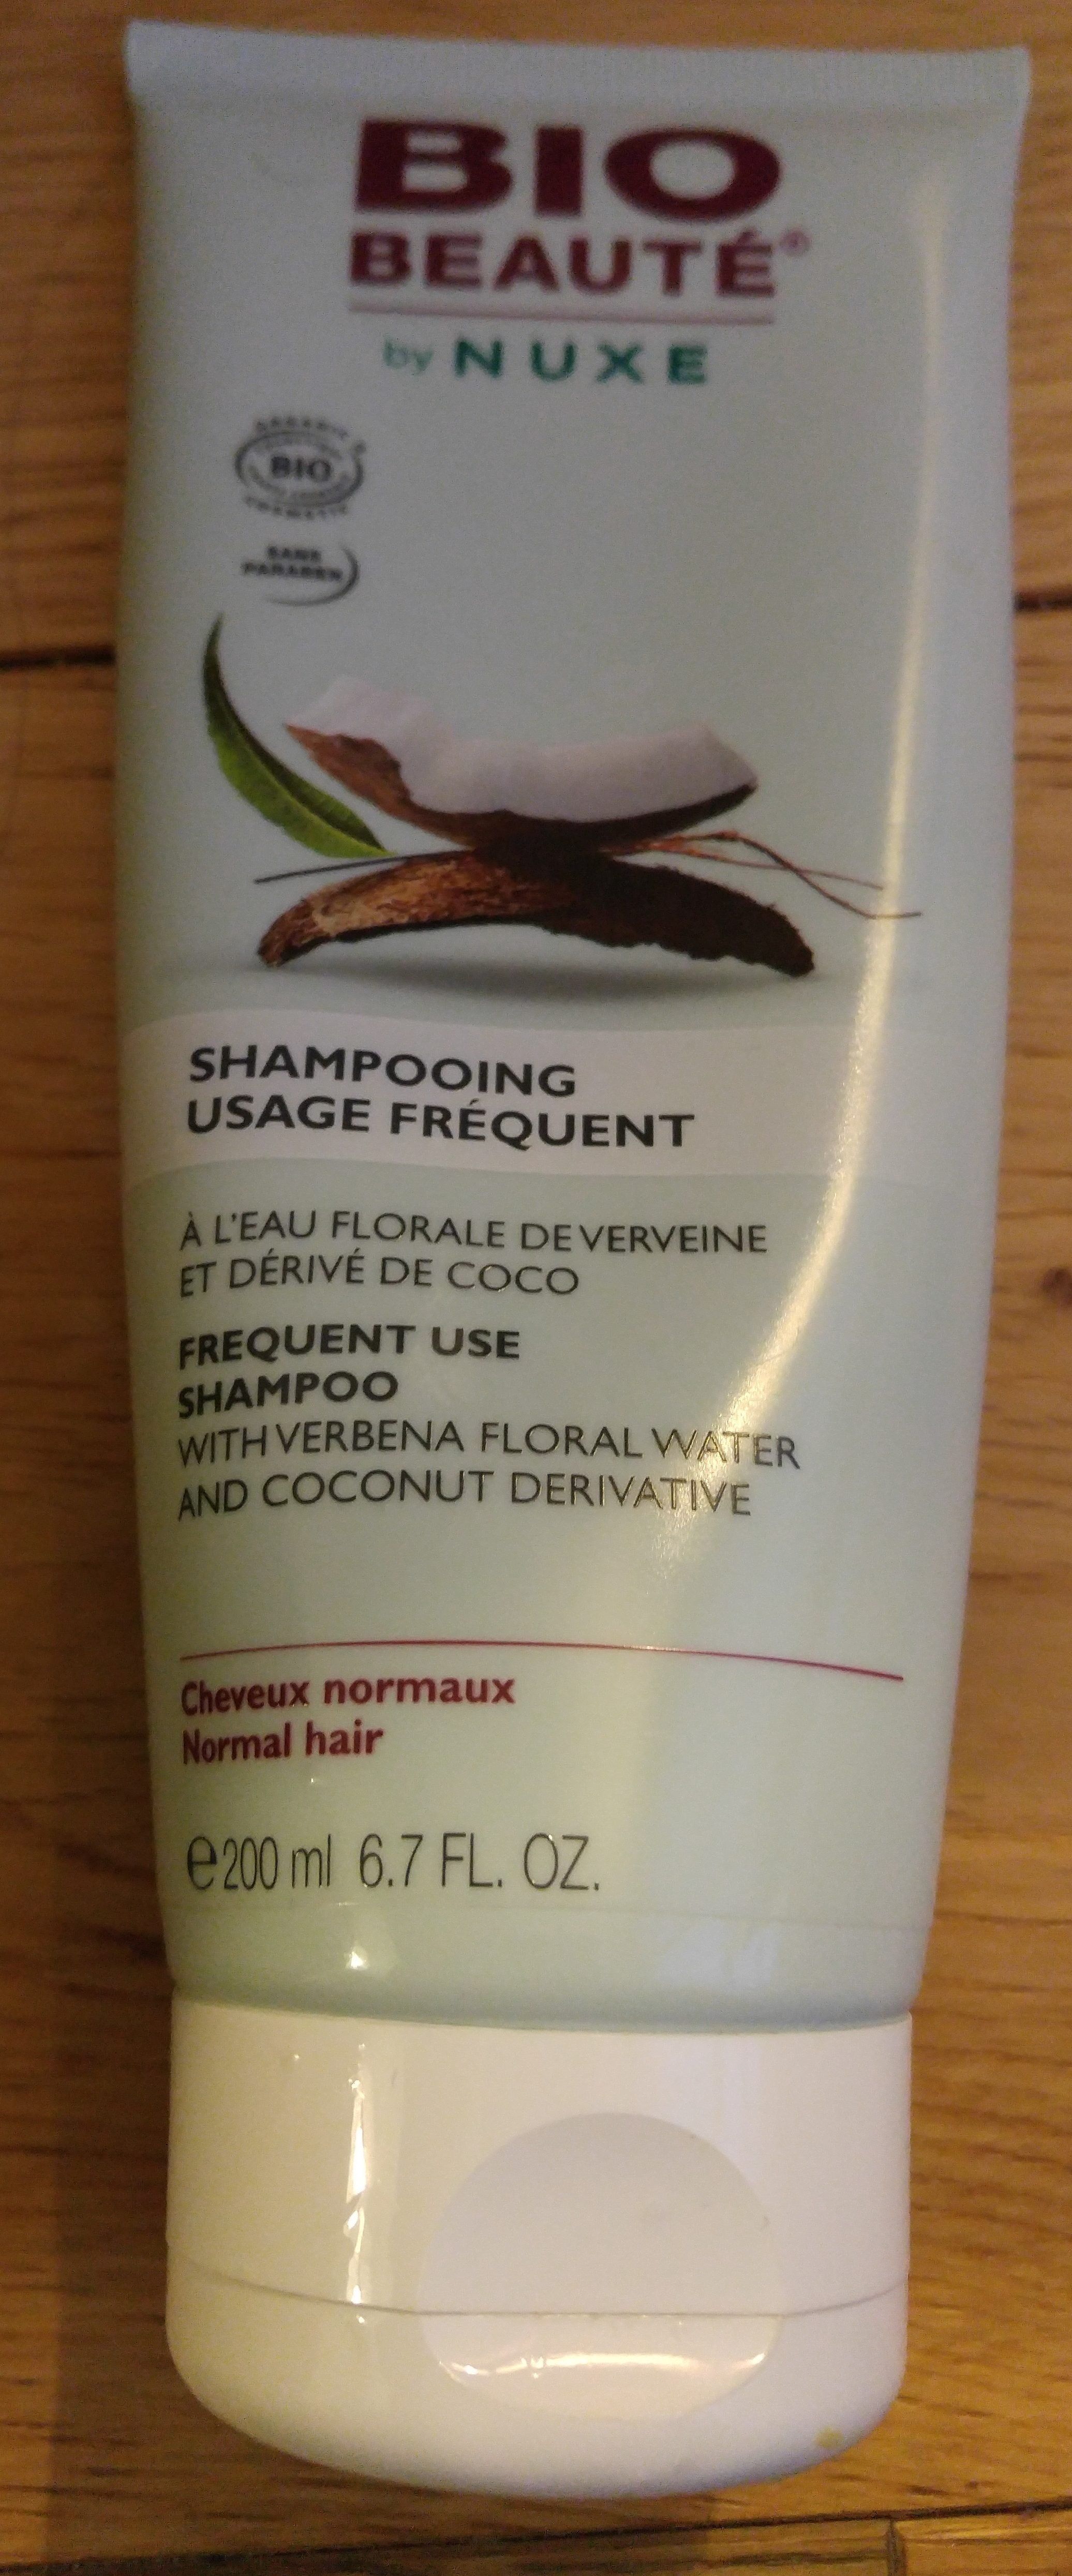 Shampooing usage fréquent - Product